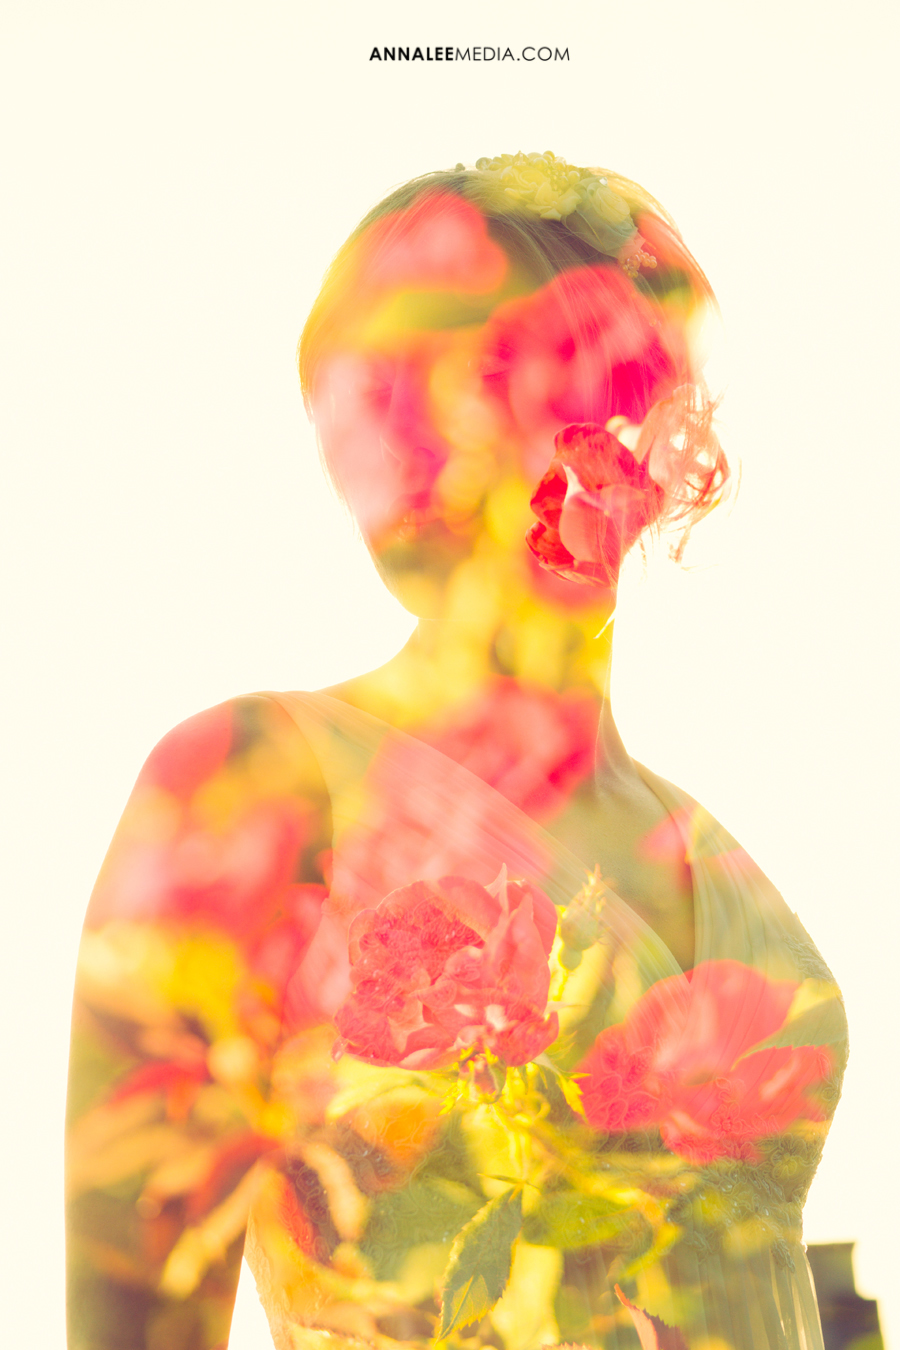 6-oklahoma-wedding-photographer-bridals-garden-ashlynn-prater-mcbride-okc-double-exposure-mark-iii-3